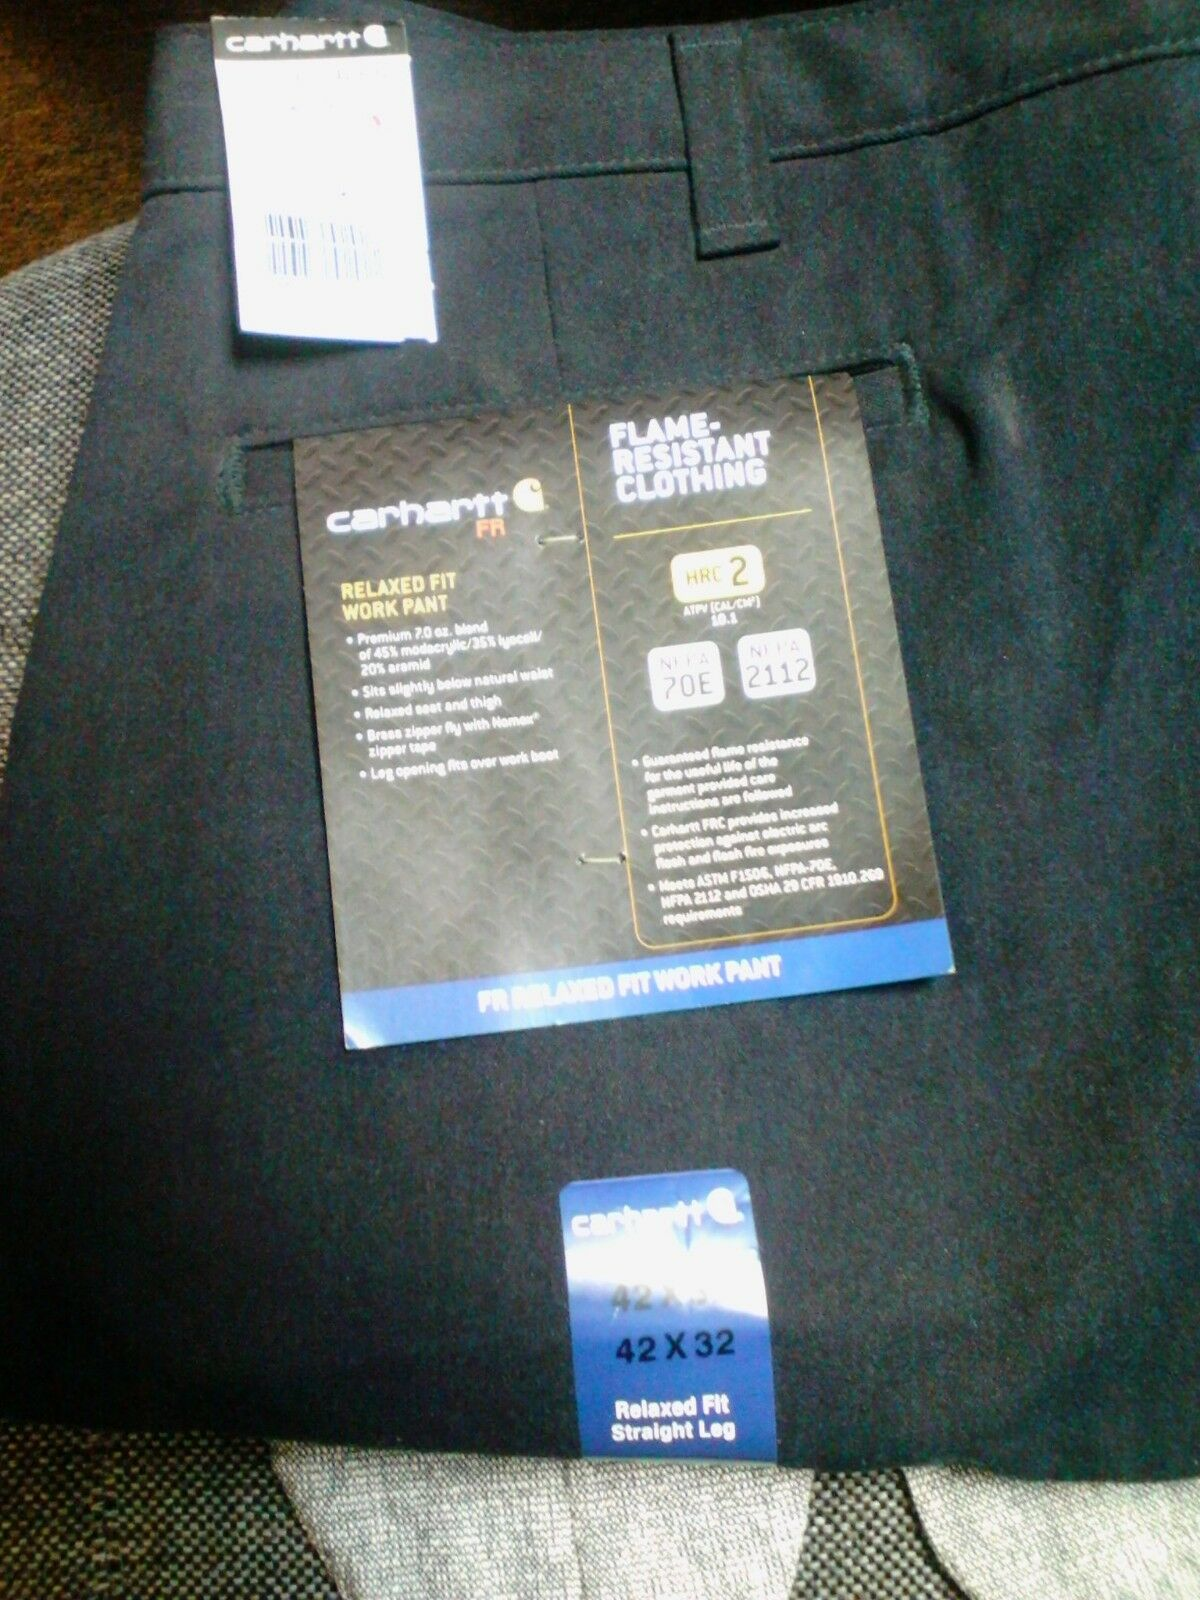 FR Carhartt relaxed fit work pants HRC2 size 42x32